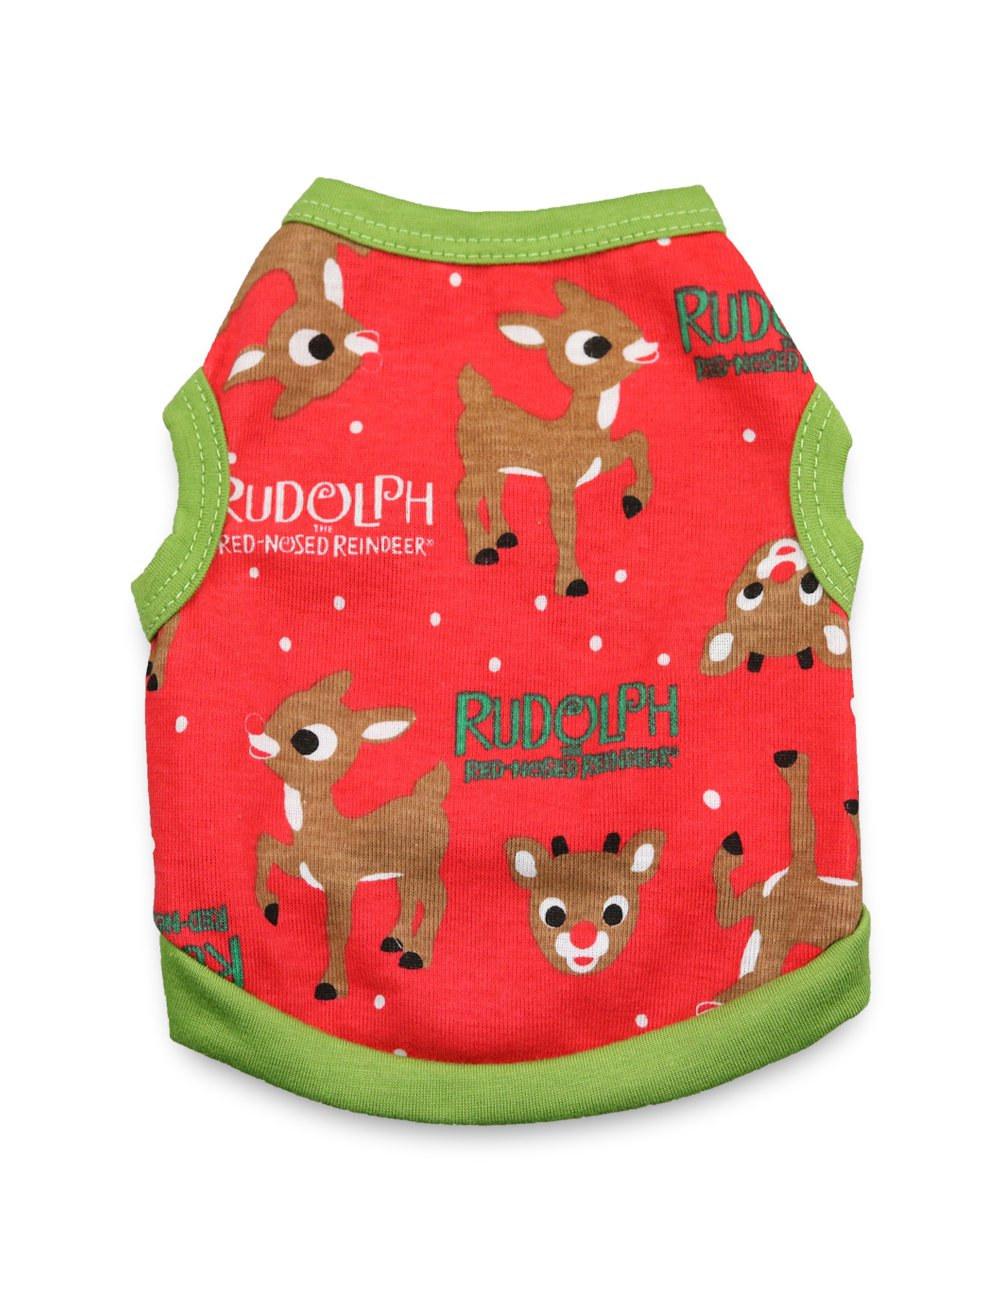 Green Side Medium (5.5-8.8lb) Green Side Medium (5.5-8.8lb) DroolingDog Dog Christmas Shirt Rudolph Reindeer Pattern Puppy Clothes for Small Dogs, Medium